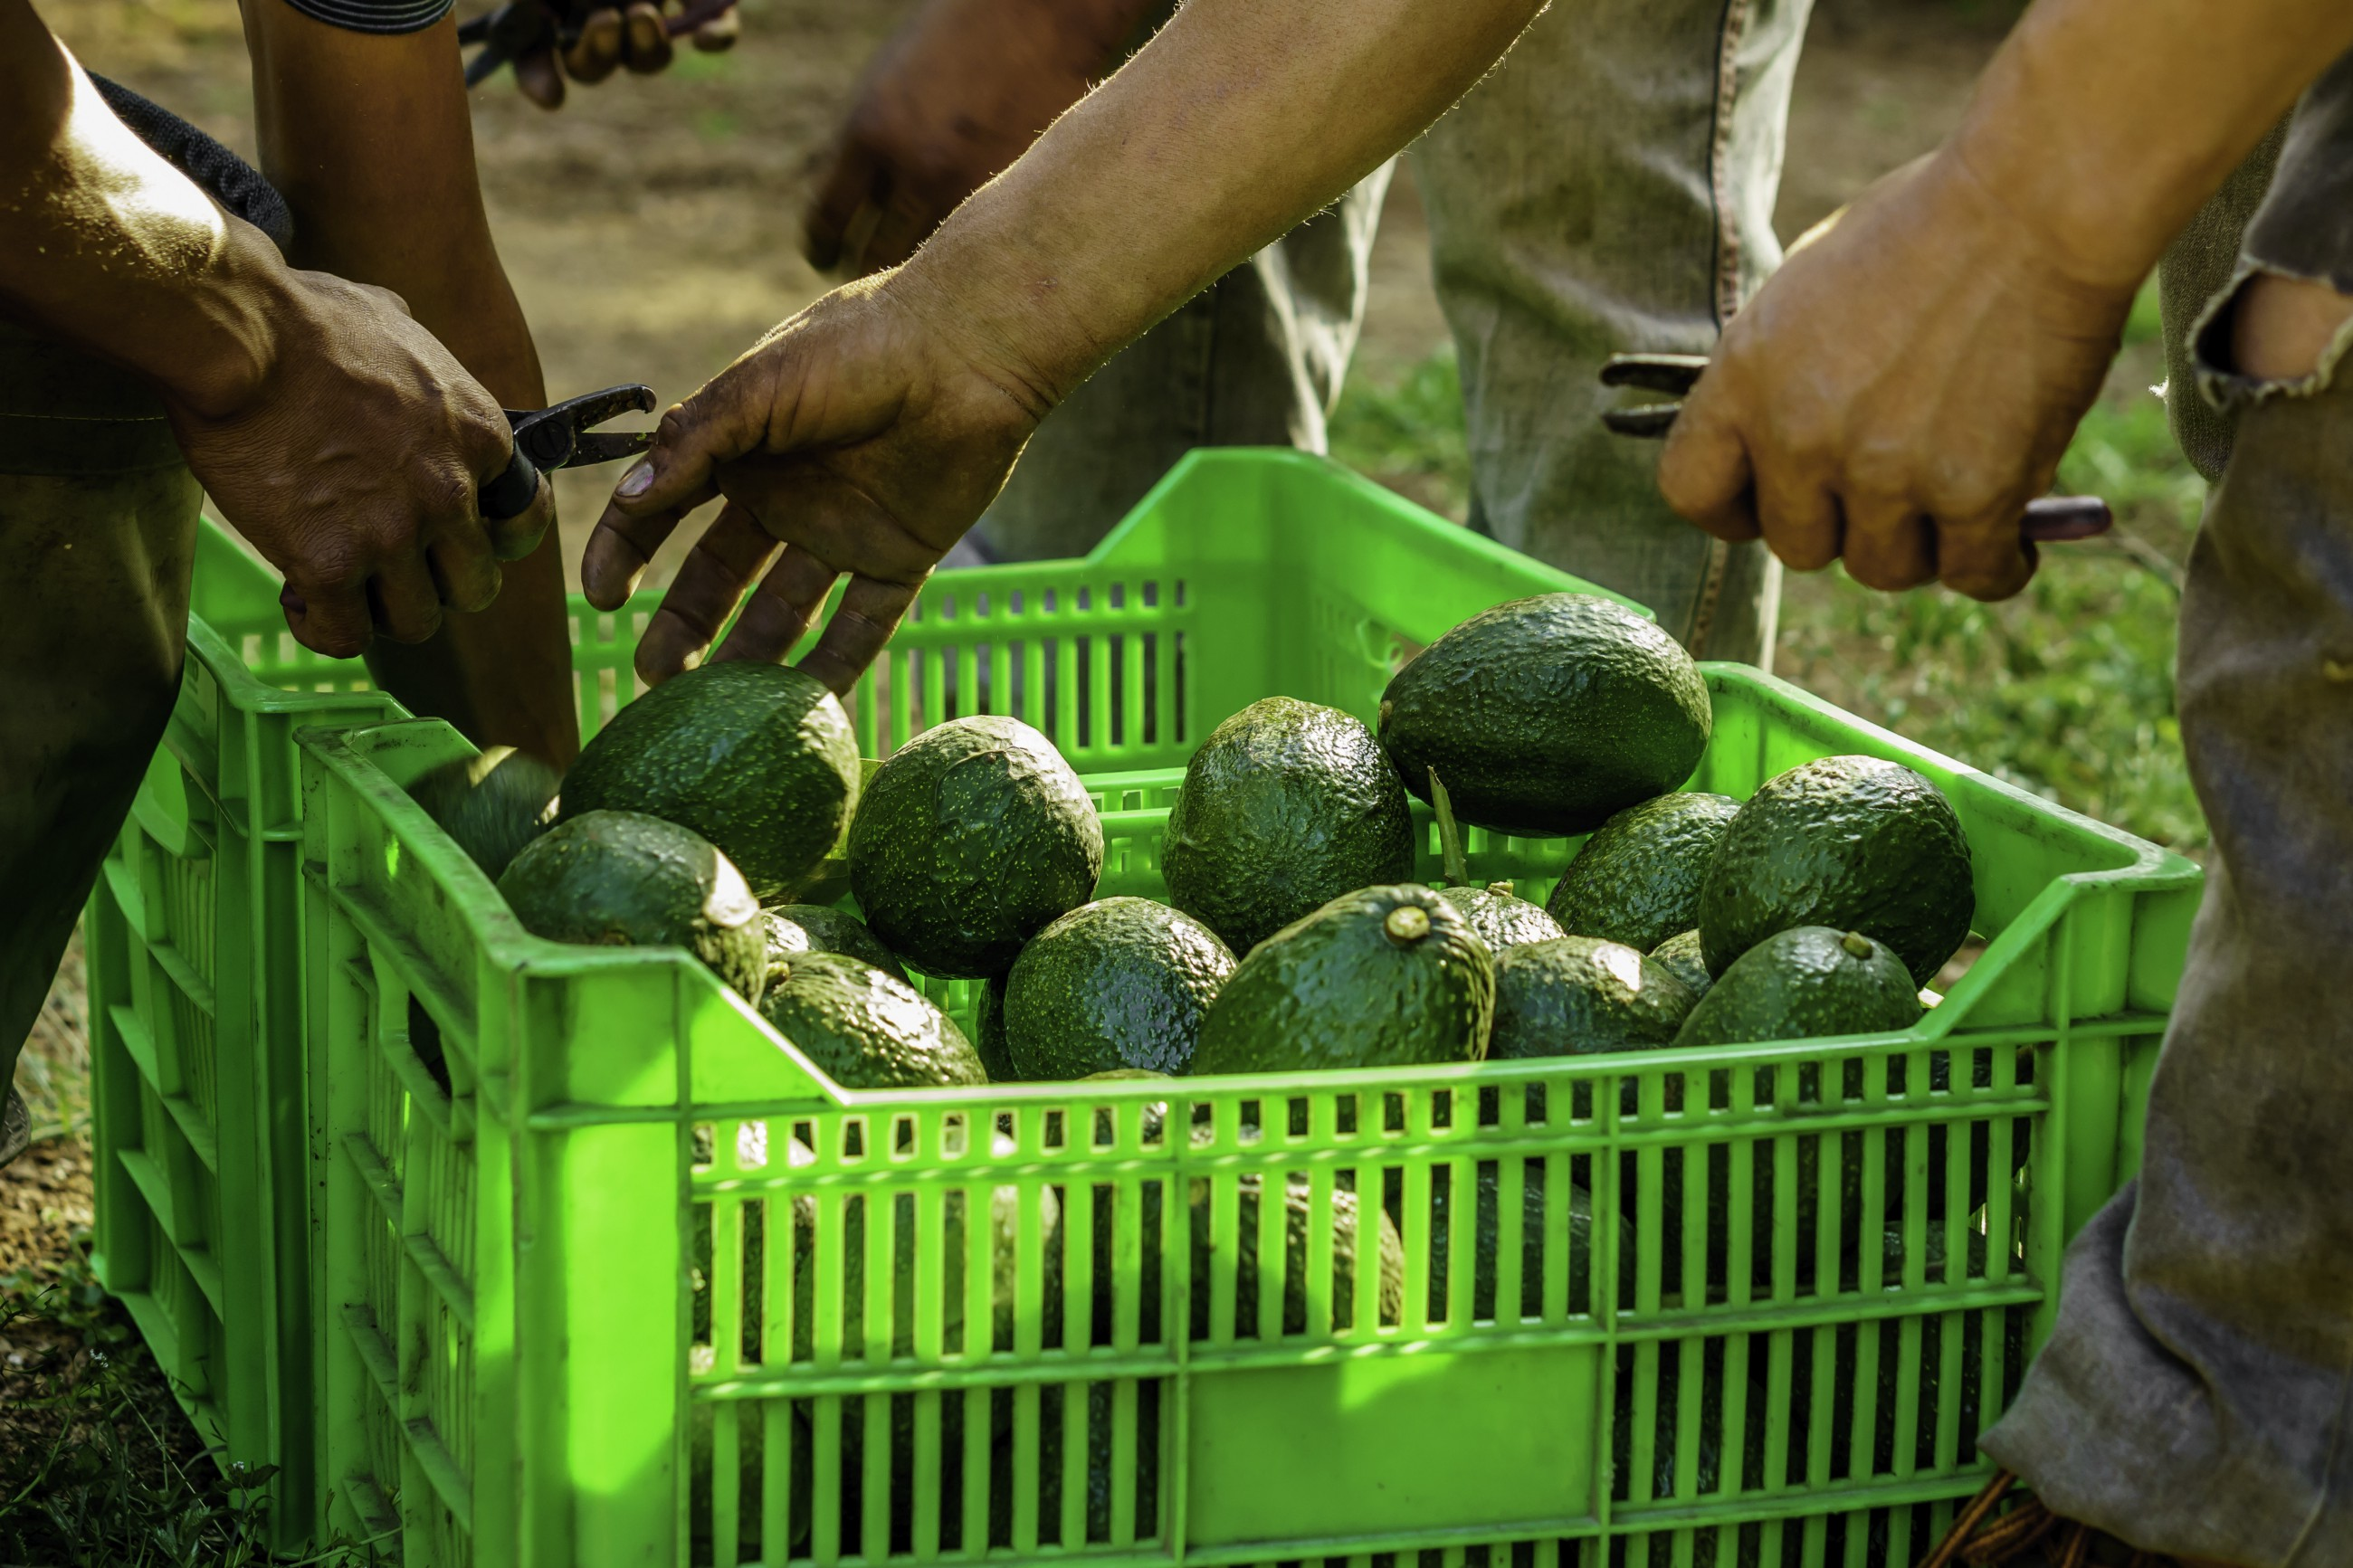 Avocado Boom Rising Demand For Avocado What To Expect In 2018 Tridge Blog